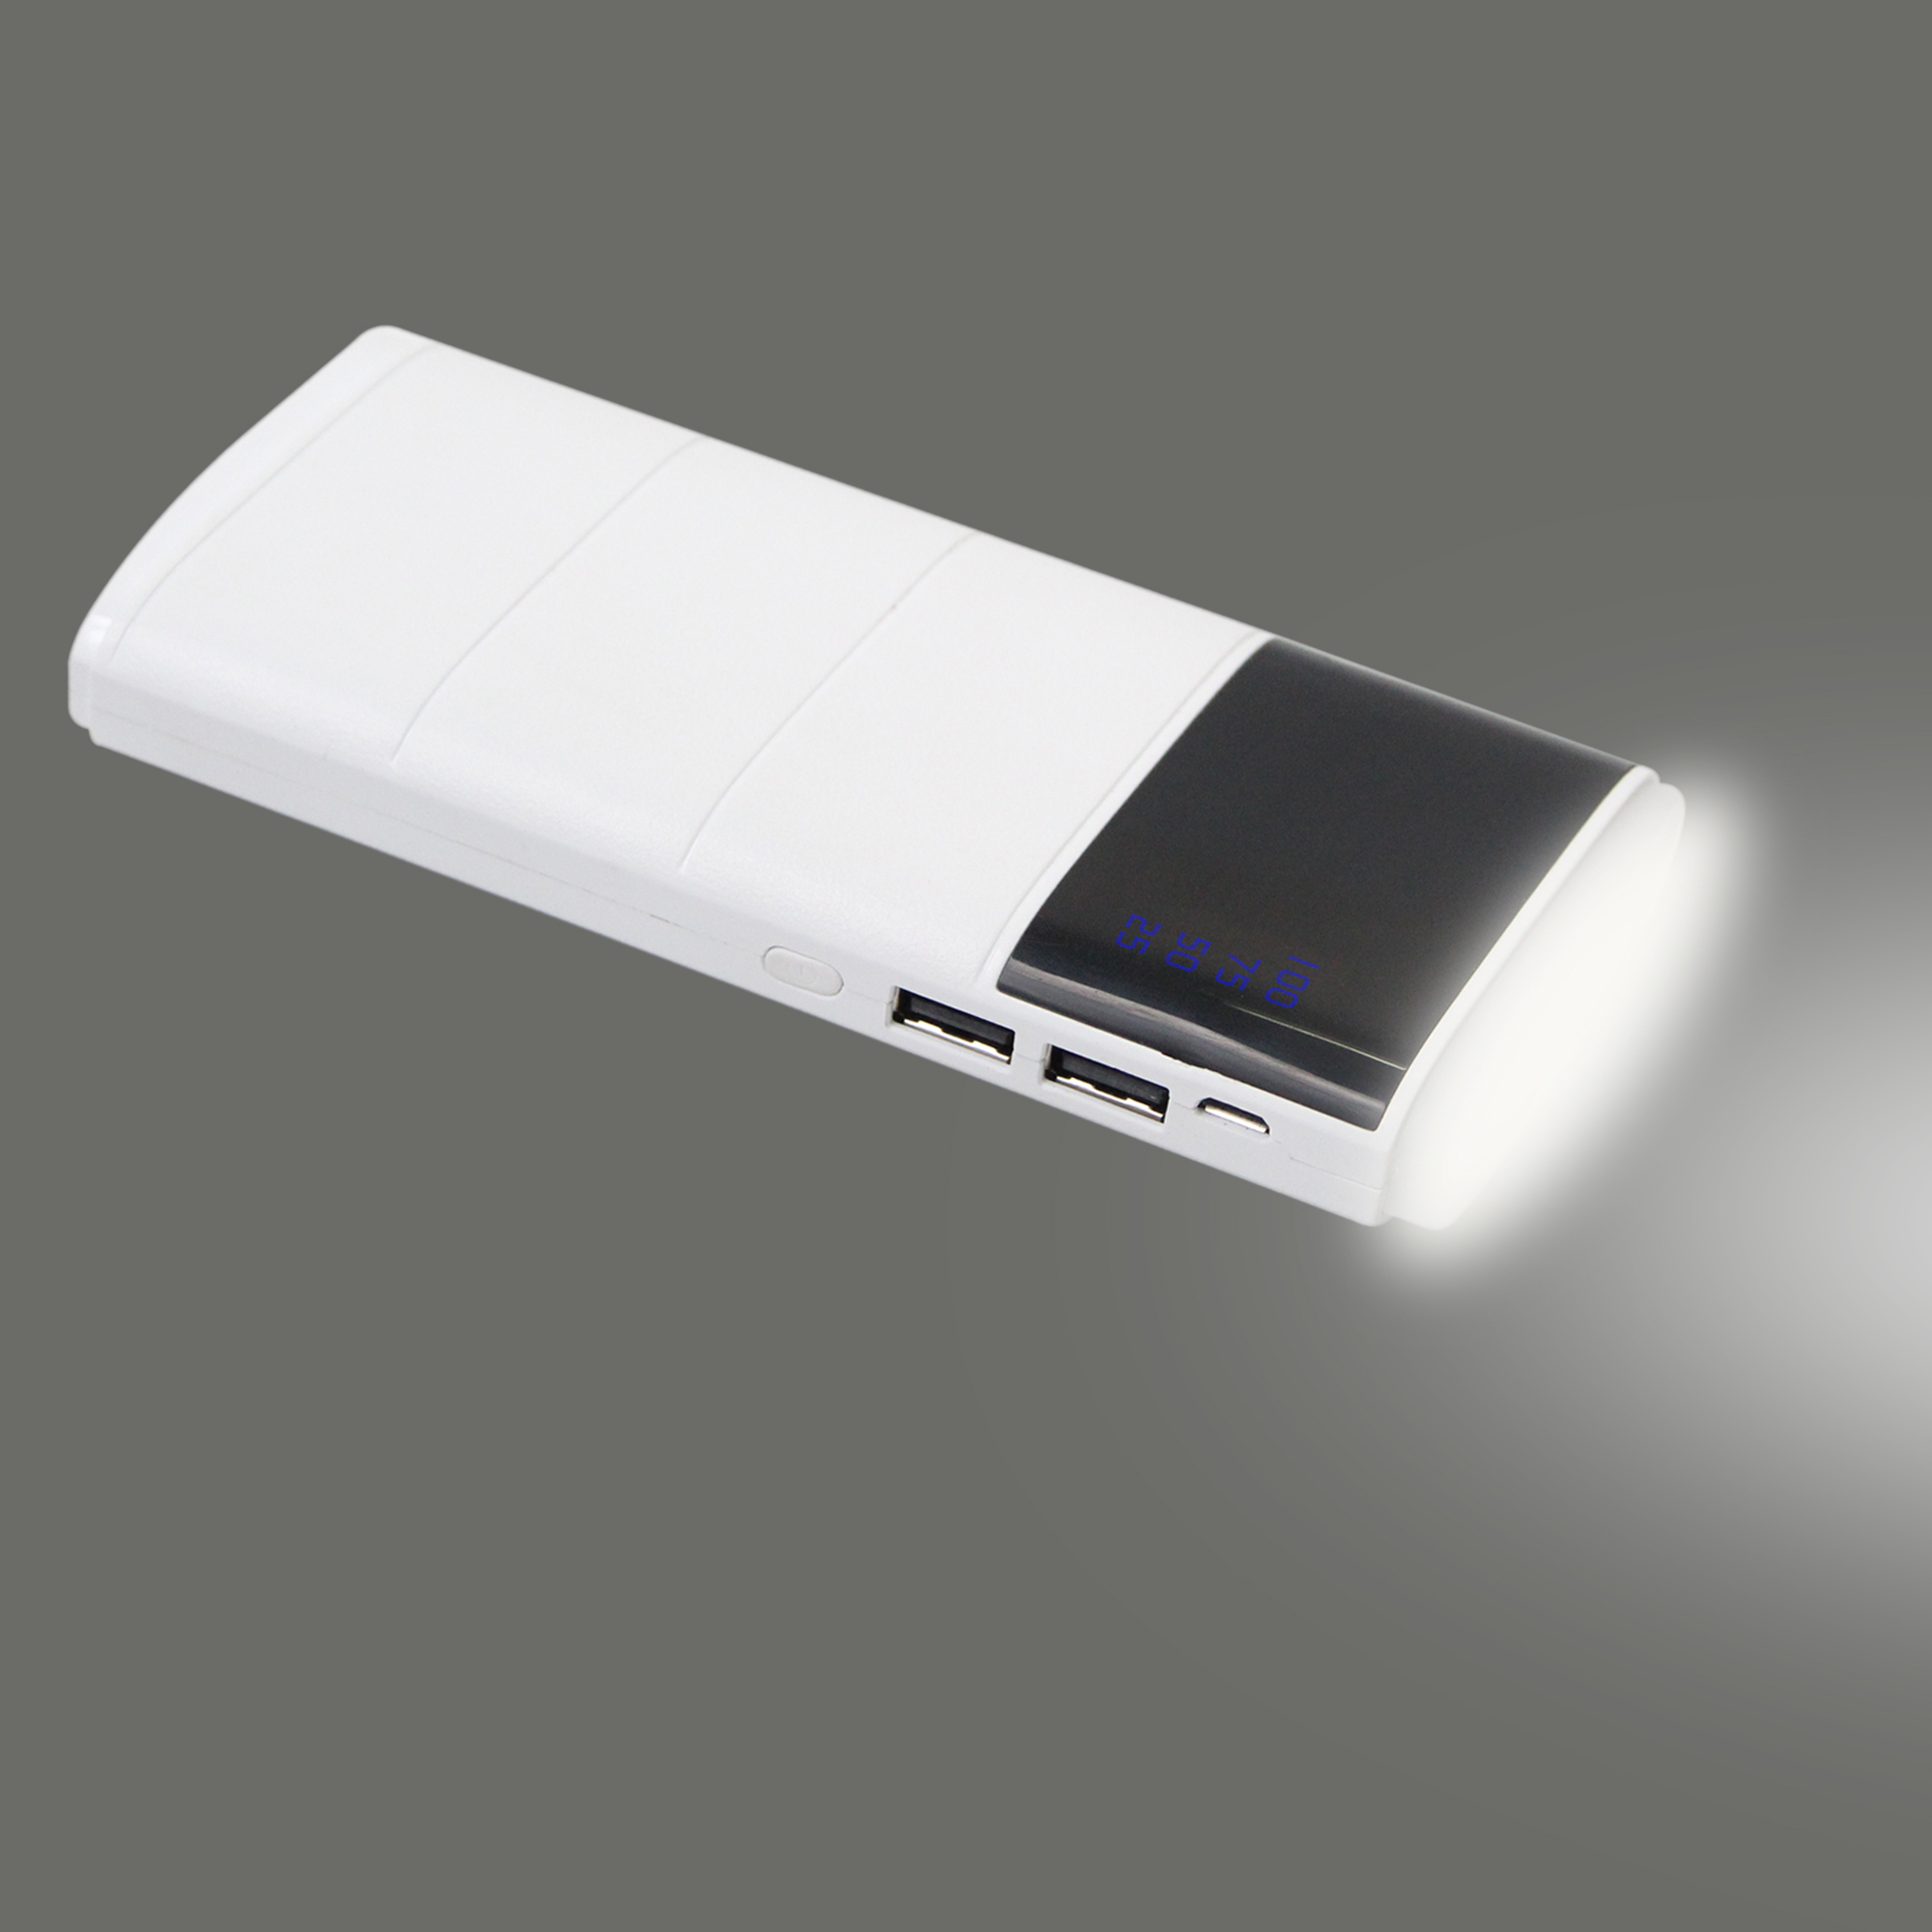 Top Light Line 20000mAh Power Bank